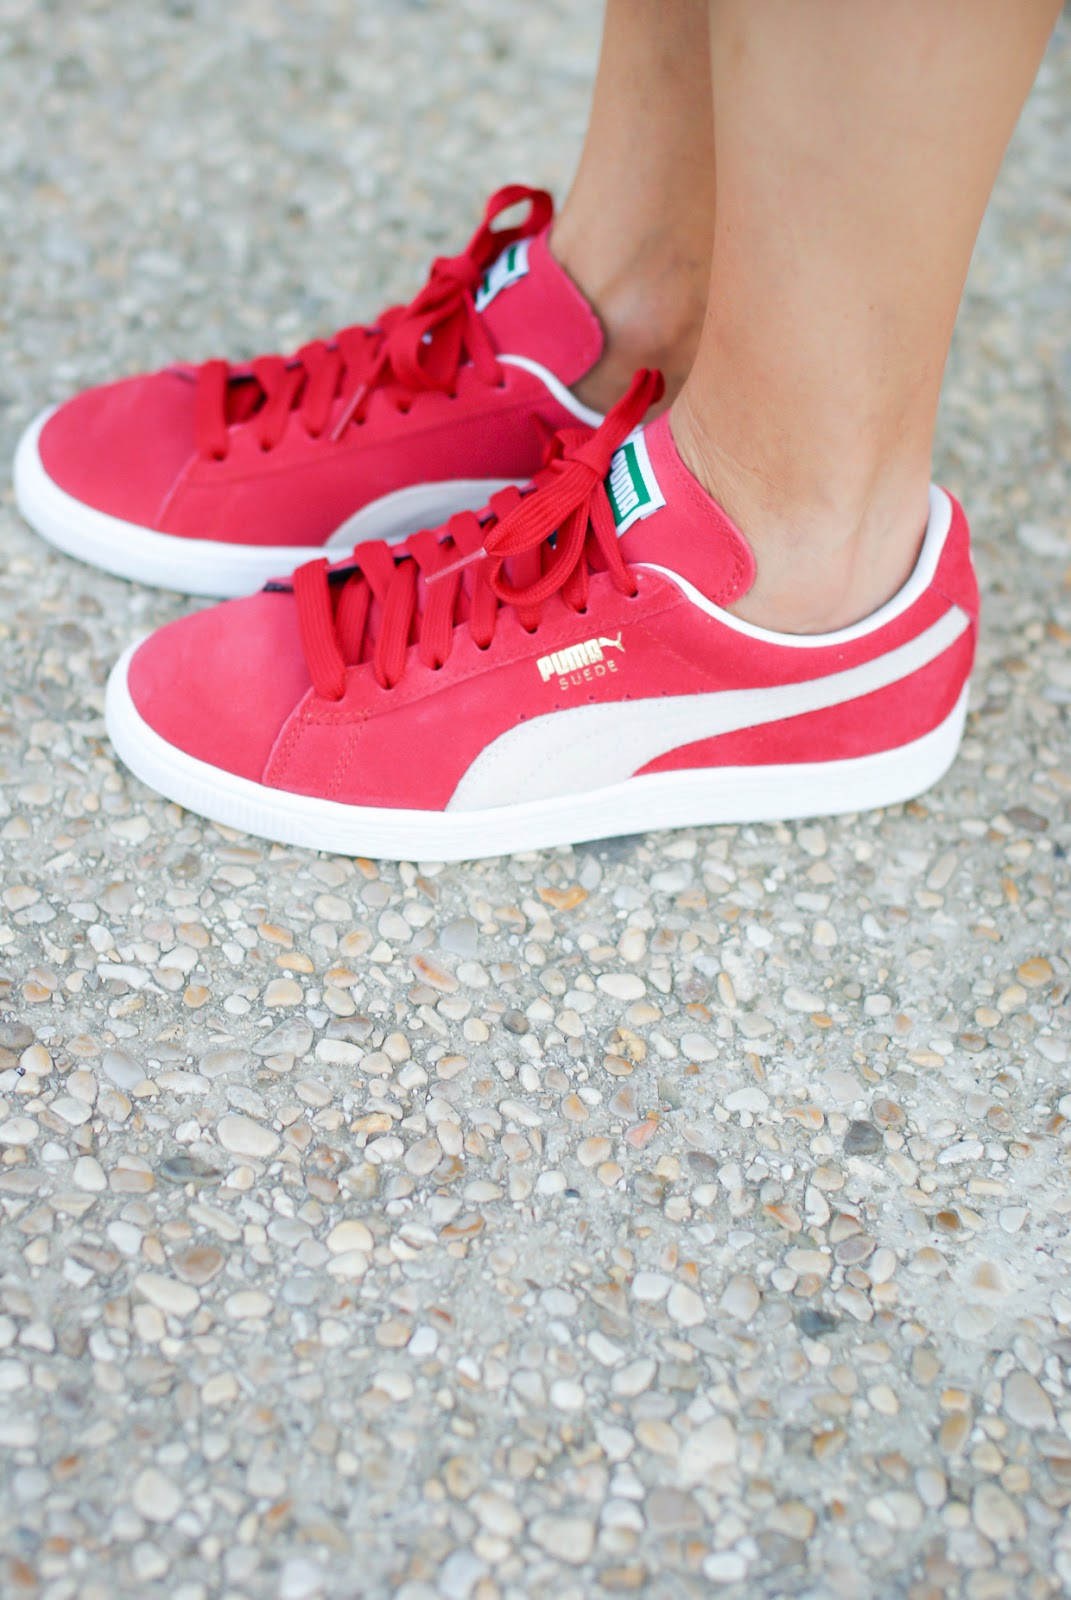 Theh Get Down Shaolin Fantastic's Puma suede classic red sneakers on Fashion and Cookies fashion blog, fashion blogger style